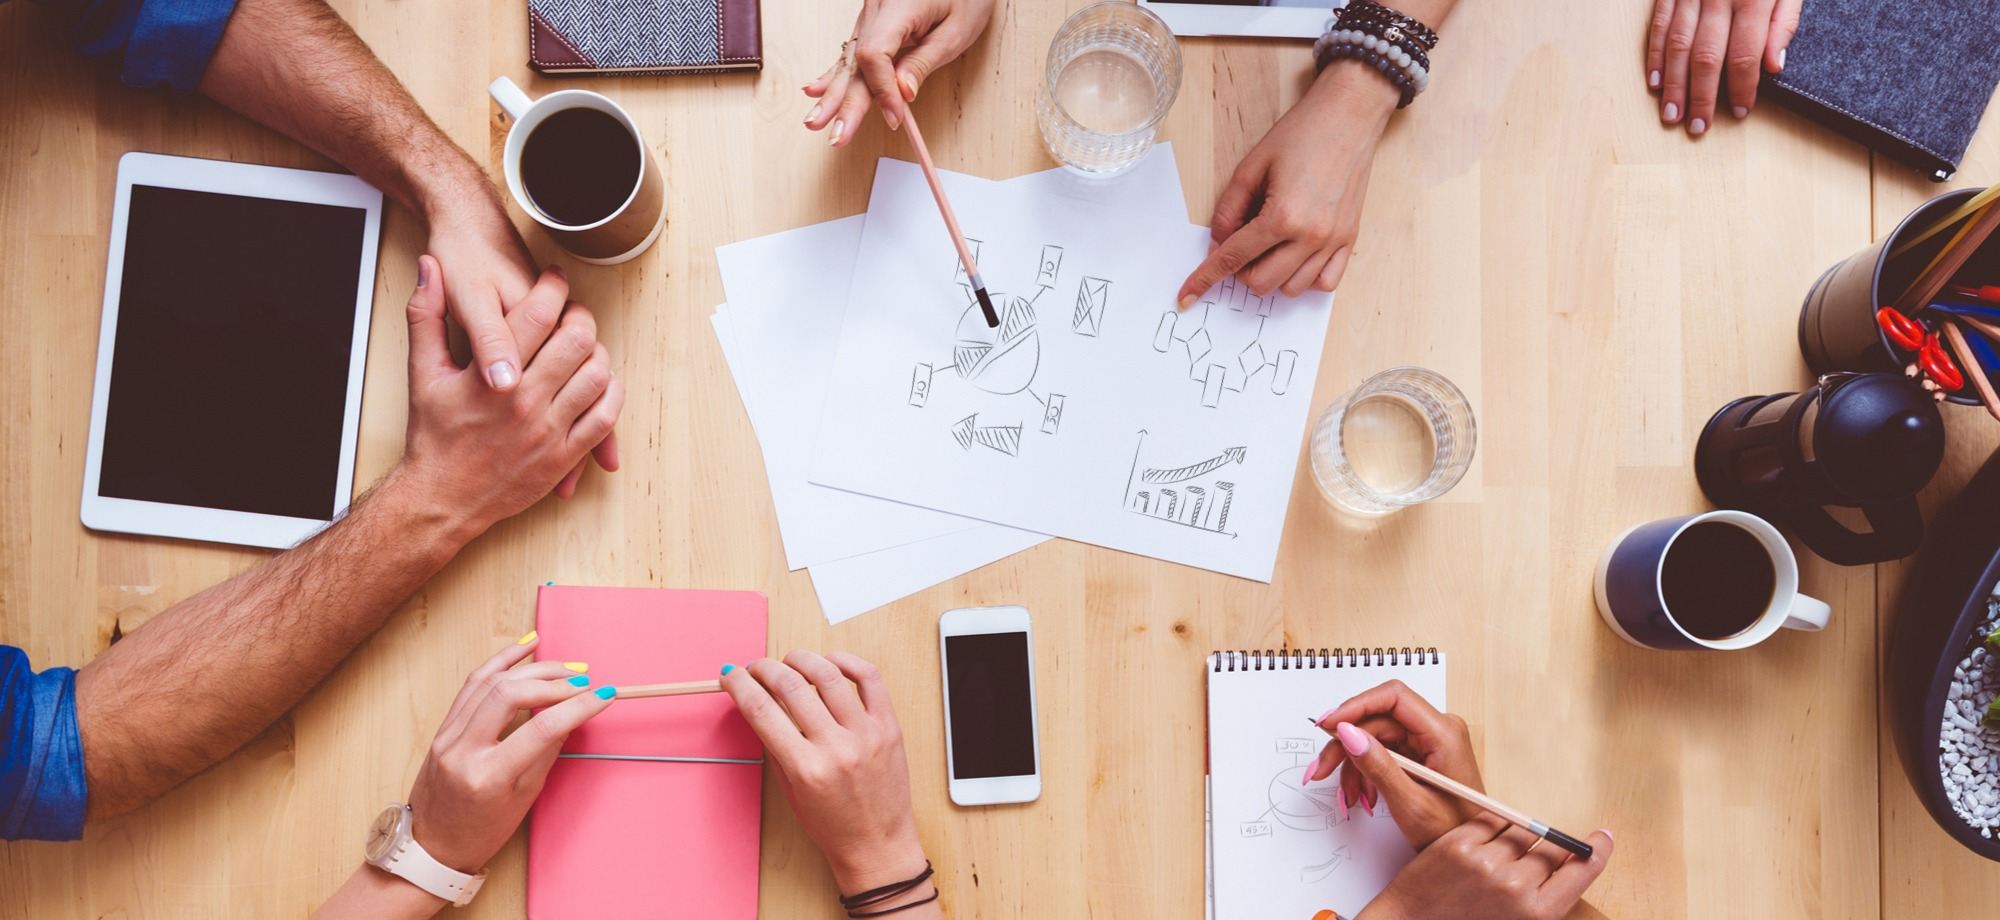 Four important tips for keeping your business more flexible and adaptable